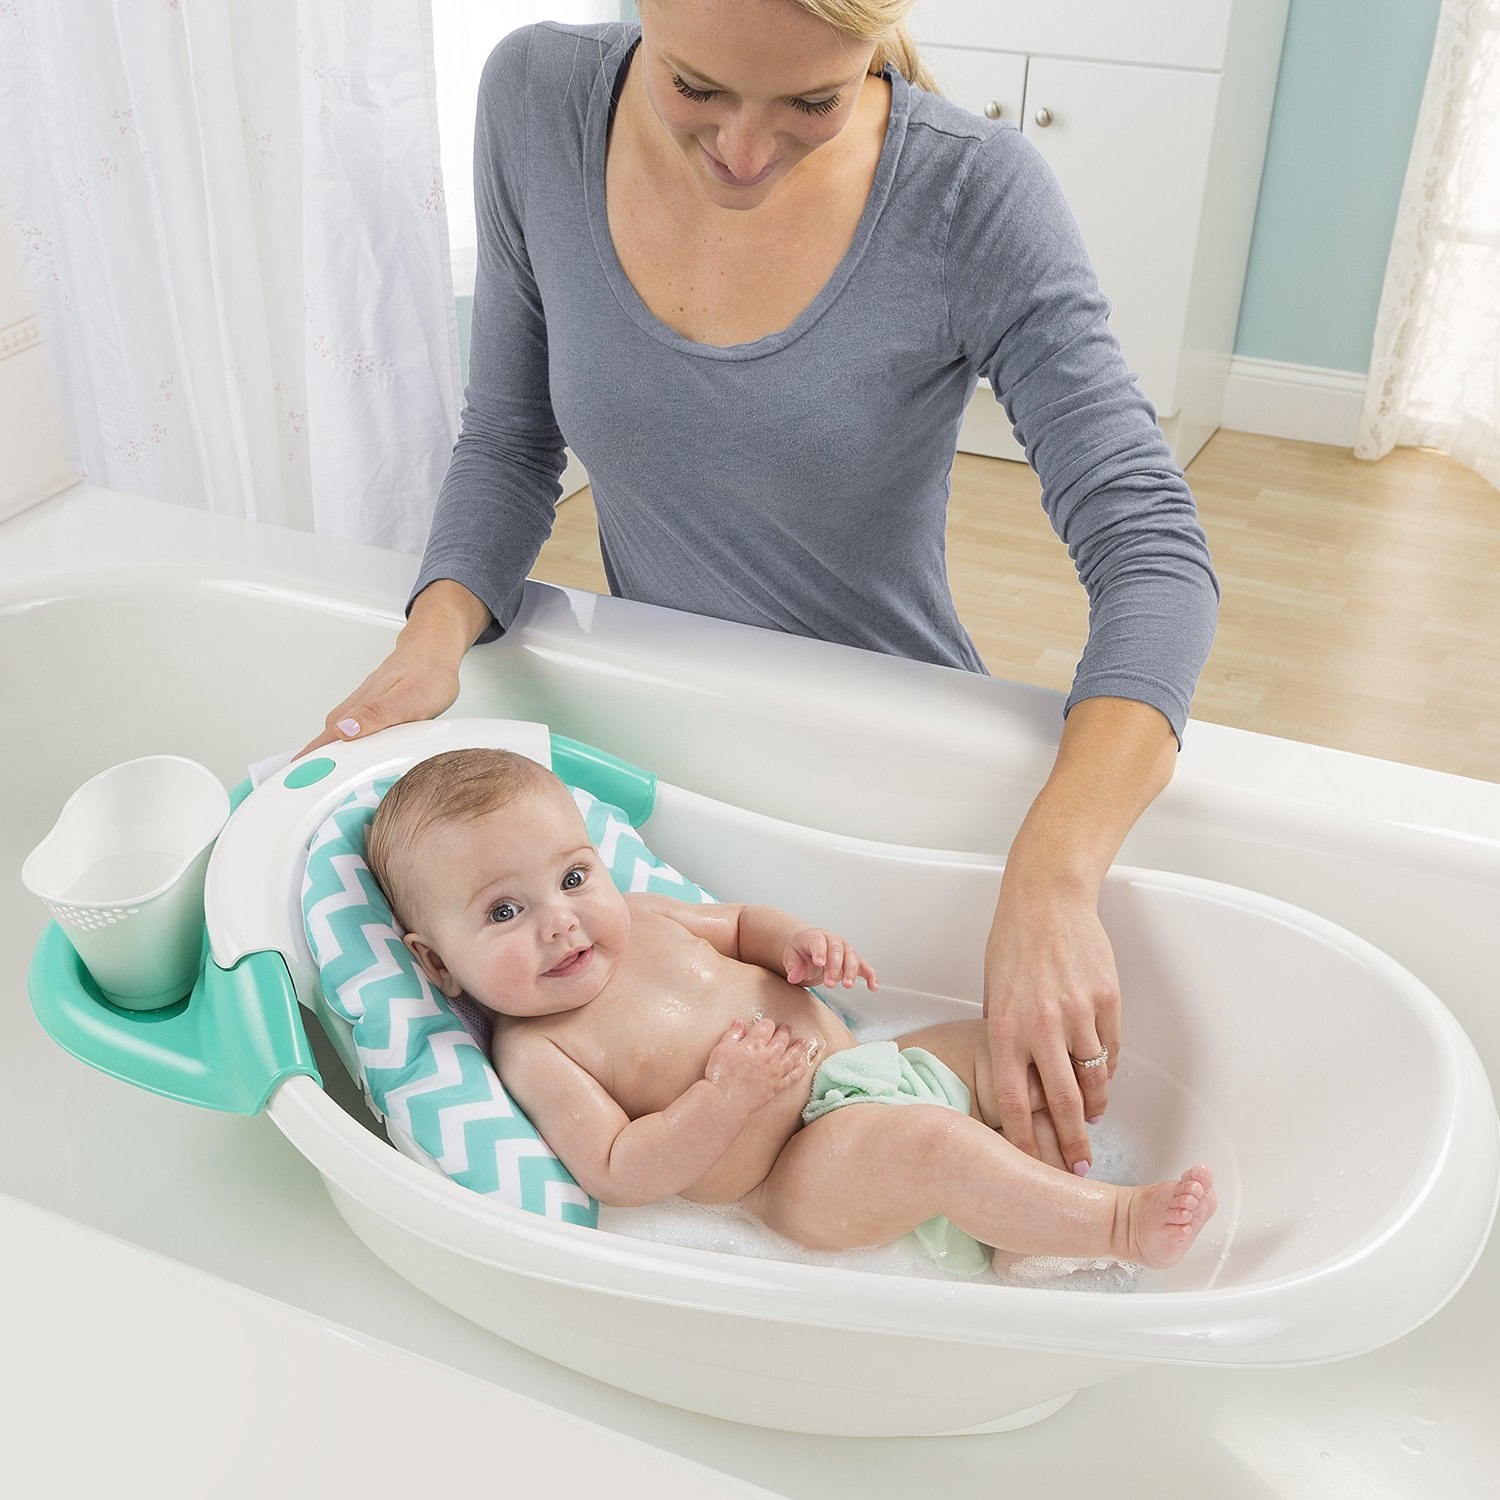 Summer Infant Warming Waterfall Bathtub - Ideal Baby